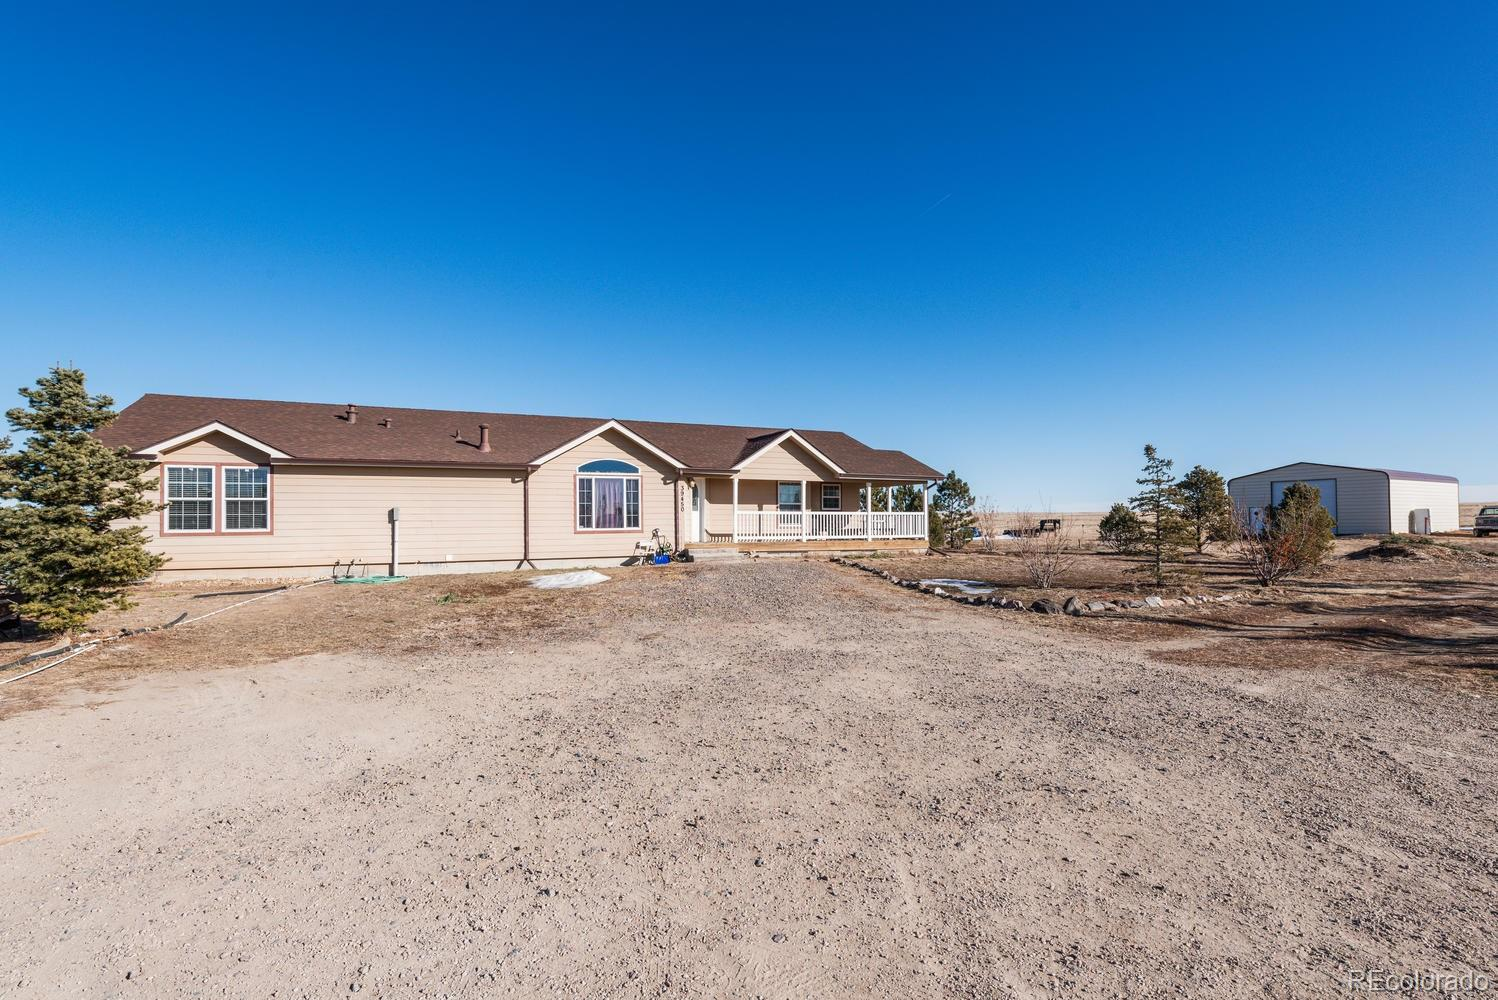 39450 County Road 162 Property Photo - Agate, CO real estate listing